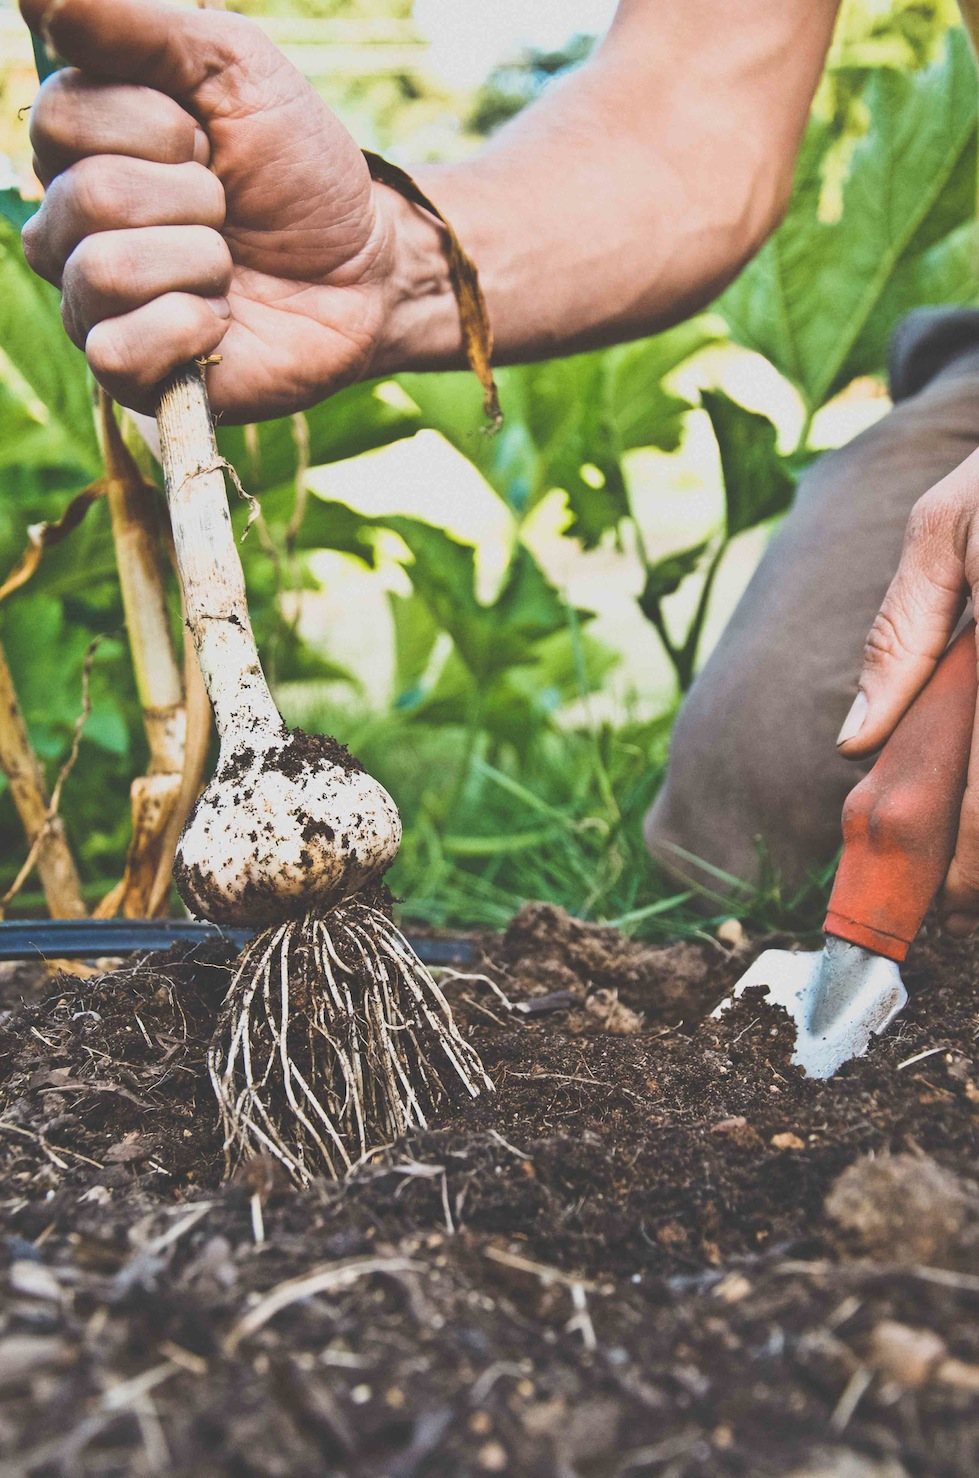 Harvest garlic and onions by lifting the entire plant.